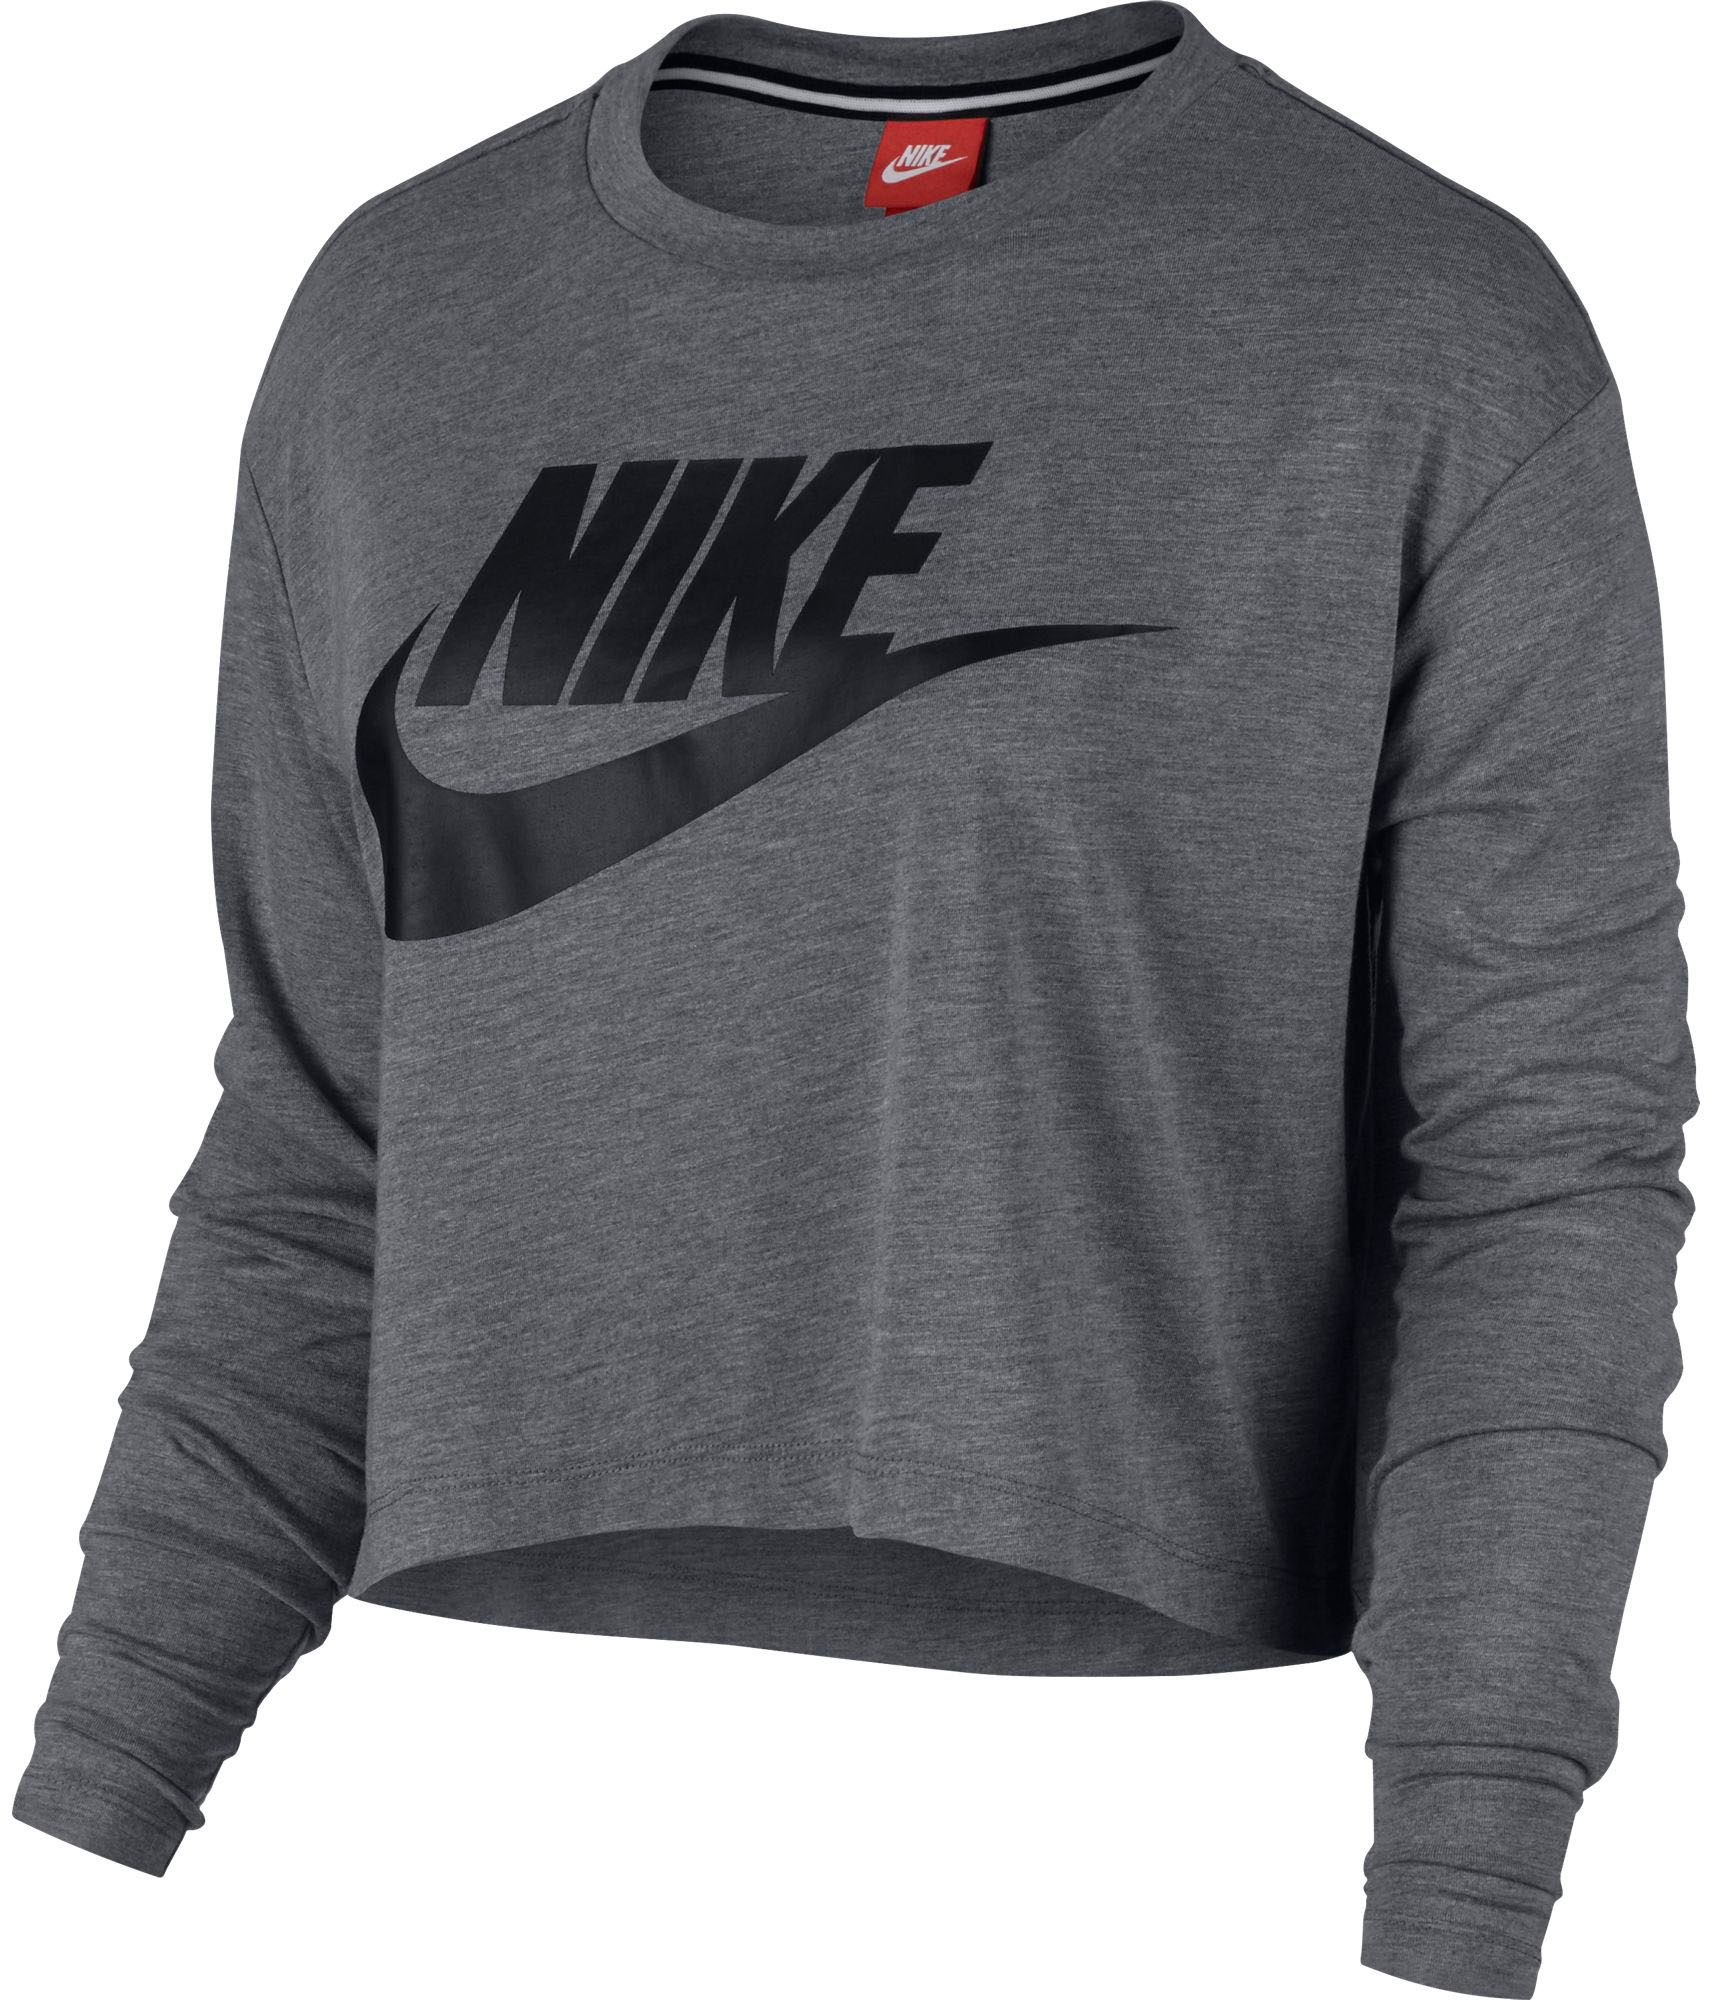 Nike Women's Sportswear Long Sleeve Crop Top by Nike